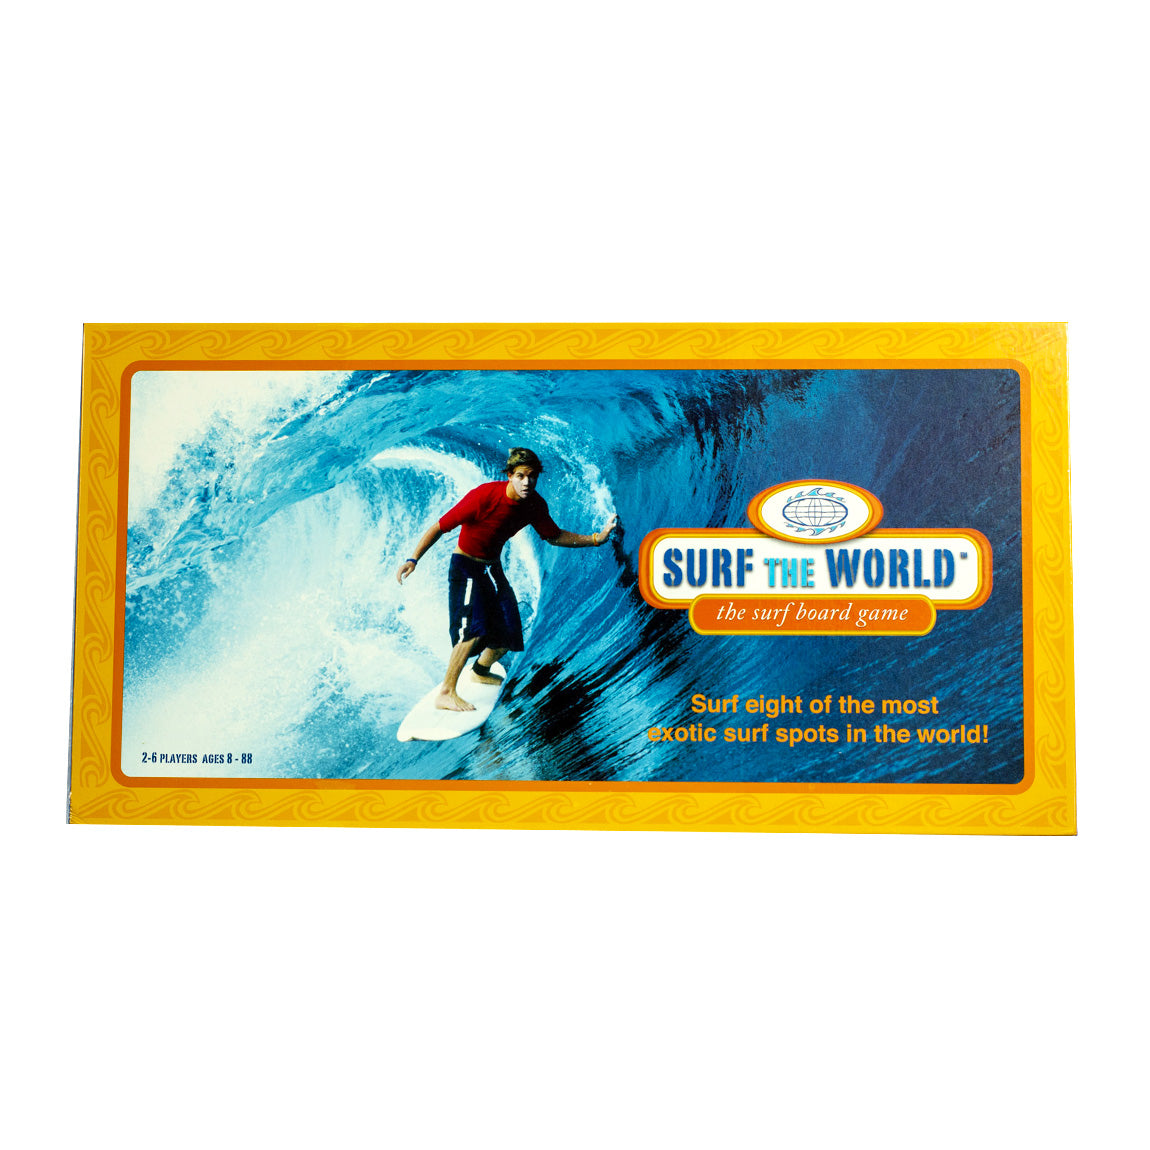 SURF THE WORLD BOARD GAME